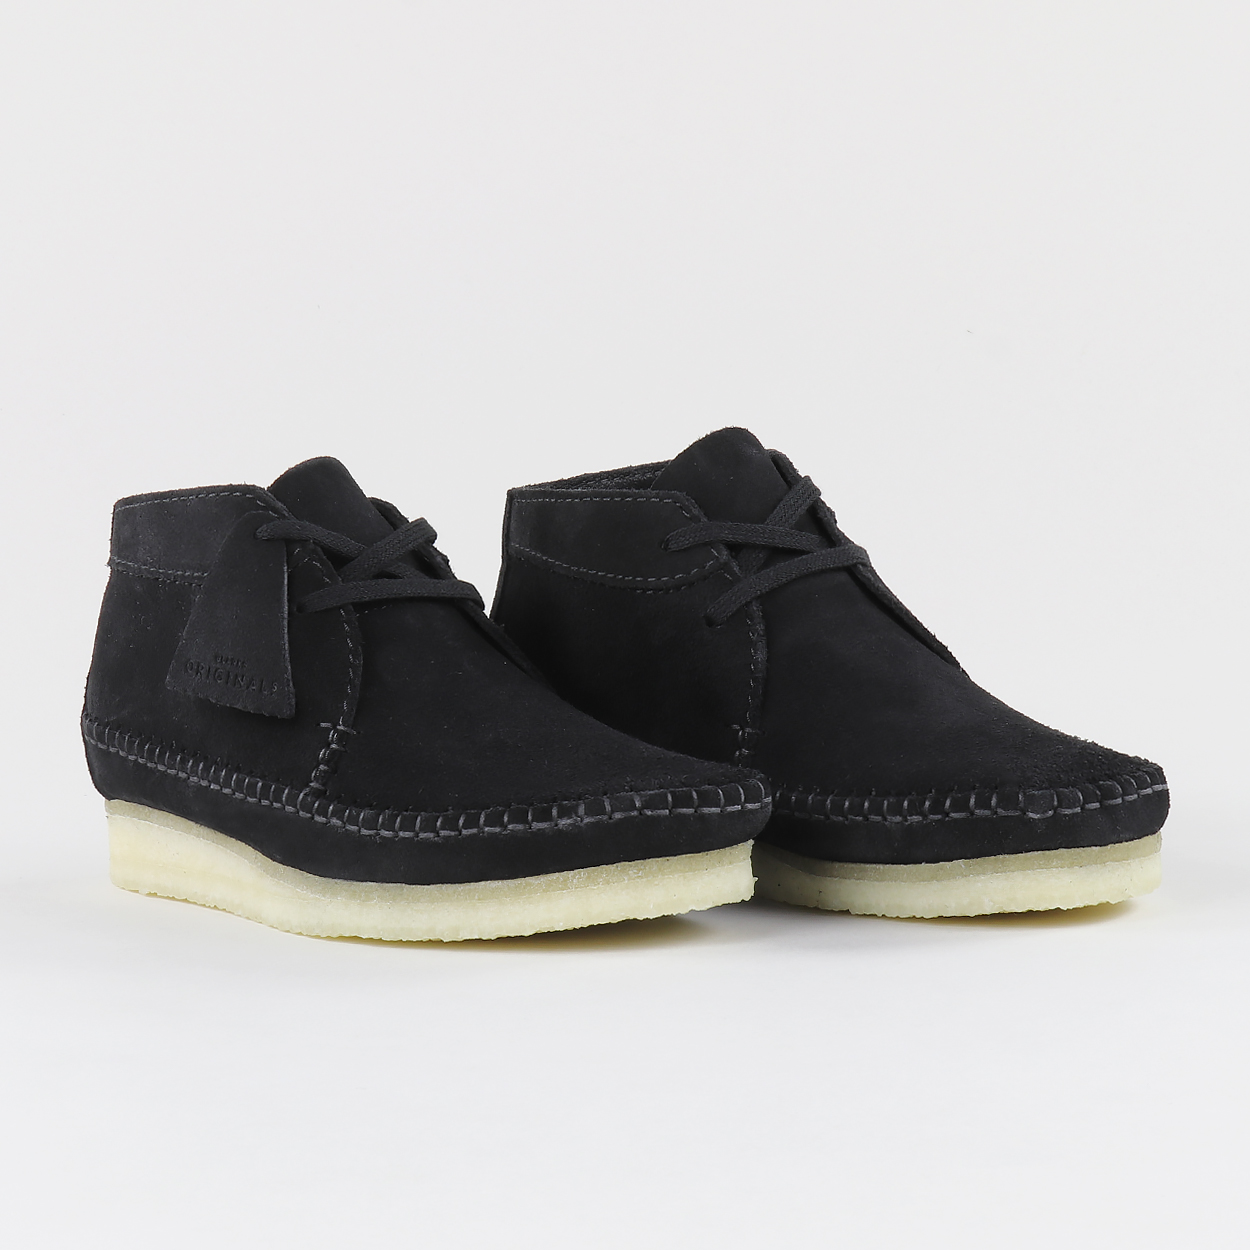 54c1cfbd751e5 The Clarks Originals Weaver gets a slight extension to give us the Weaver  Boot. High quality suede is used for the upper